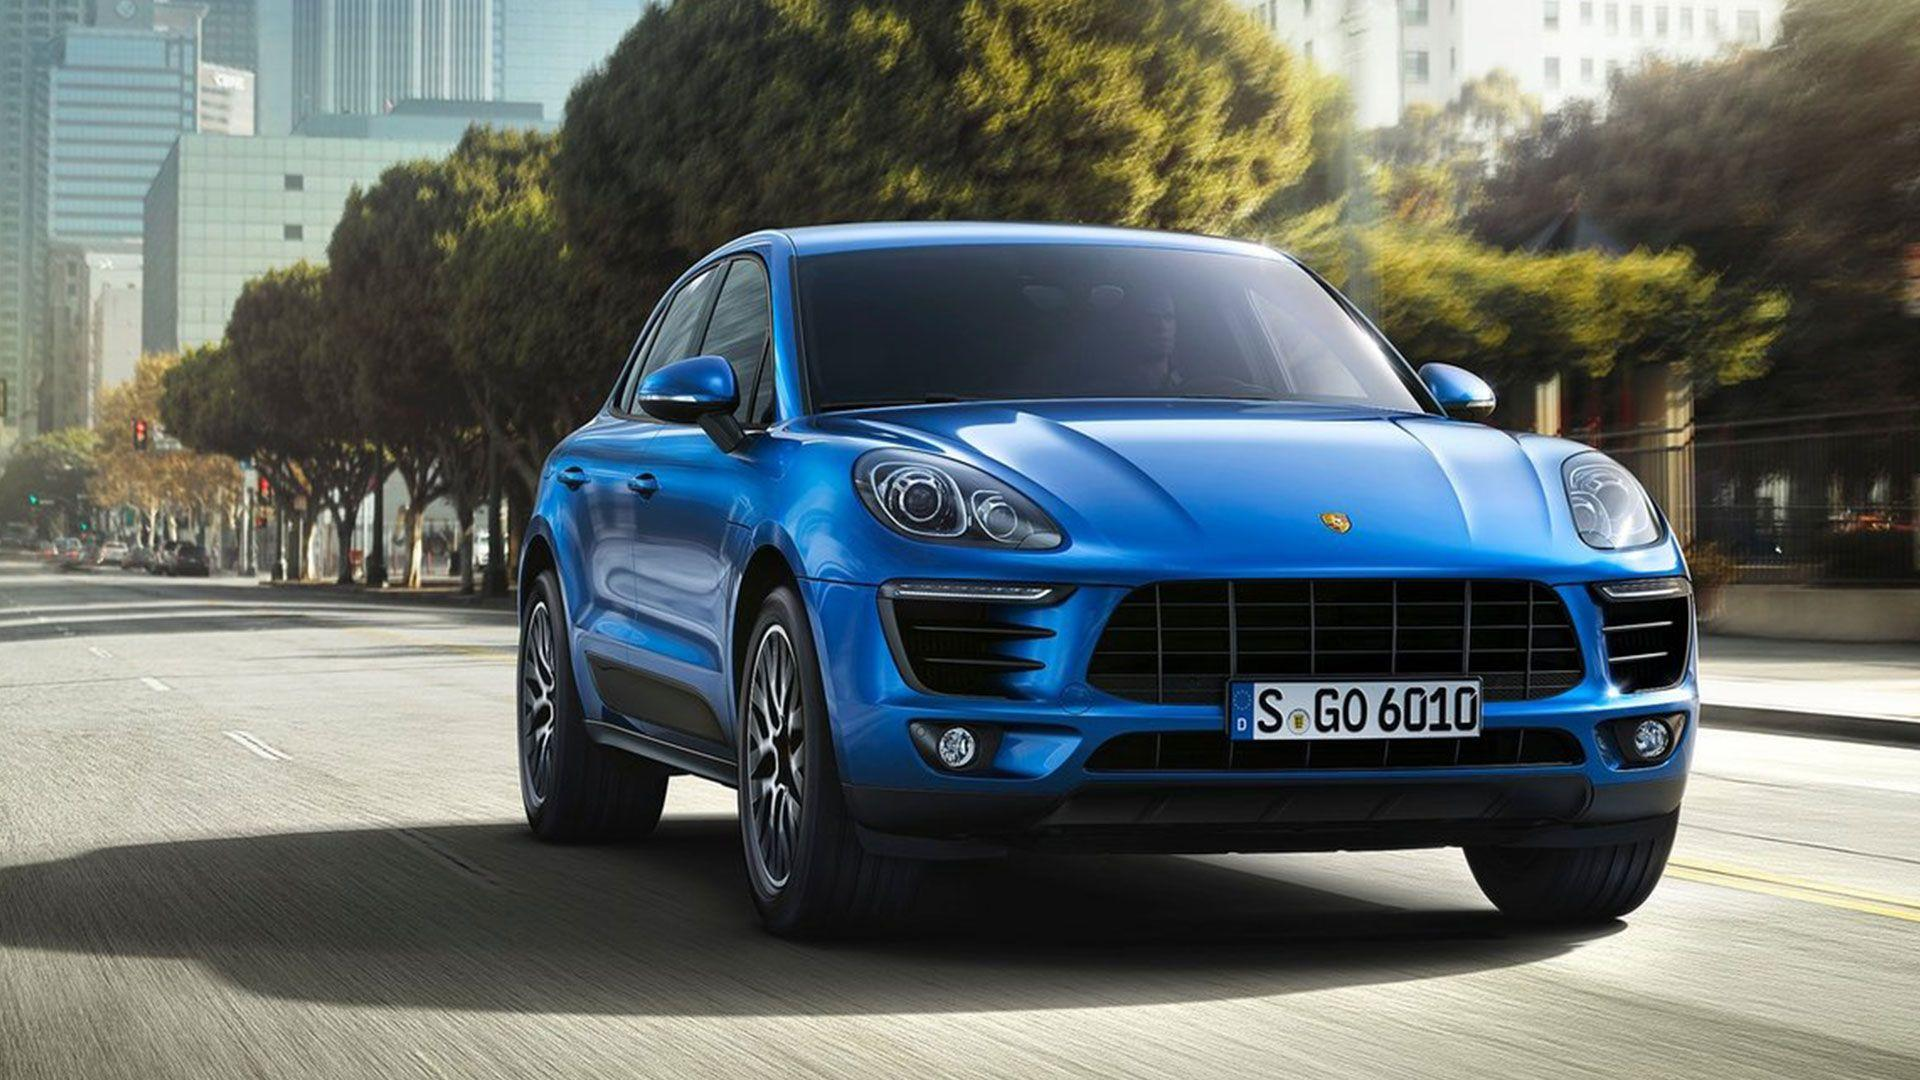 Porsche Macan Wallpapers Wallpaper Cave